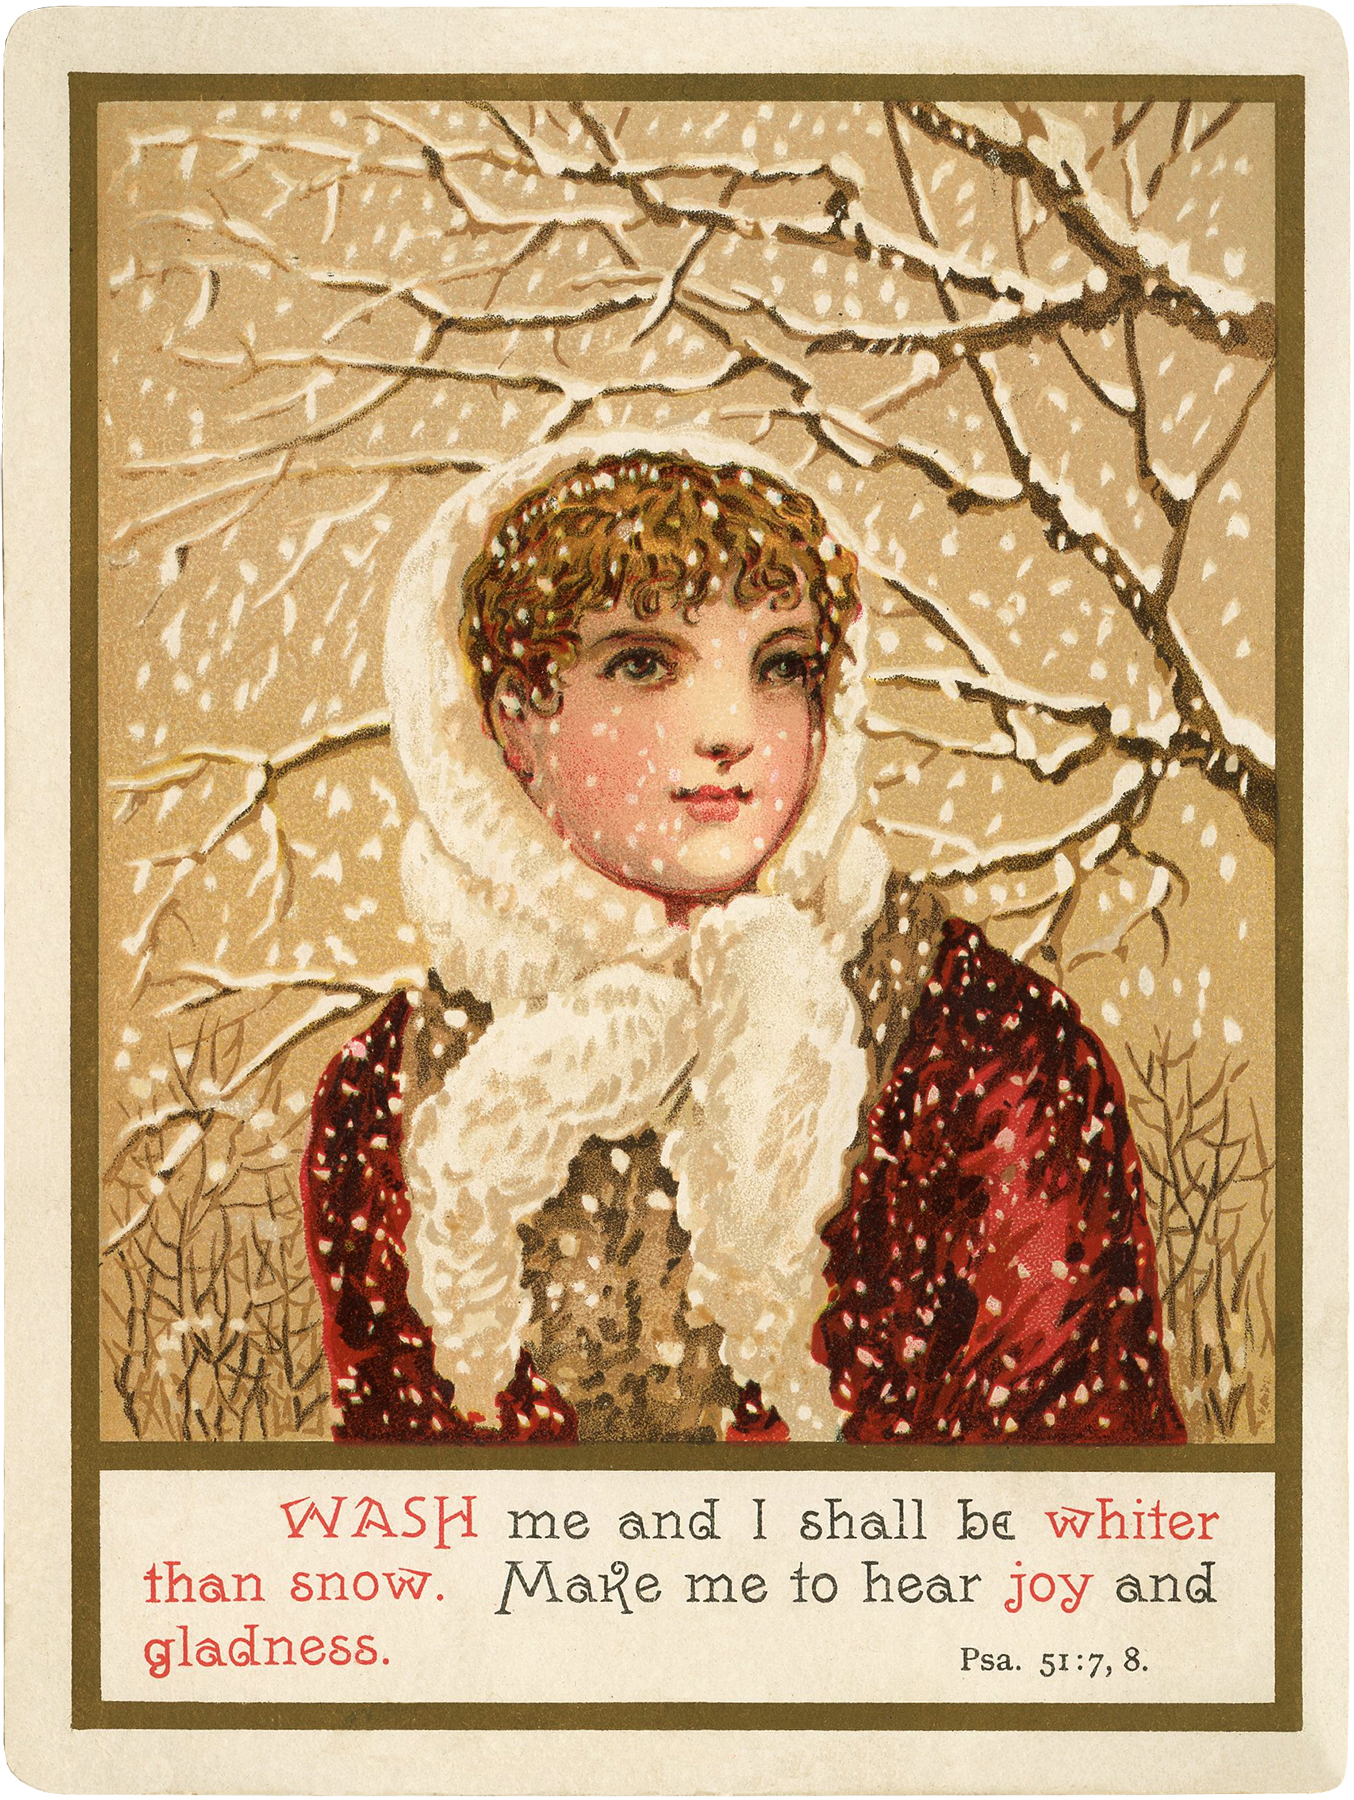 Vintage Snow Lady Image - Christmas! - The Graphics Fairy